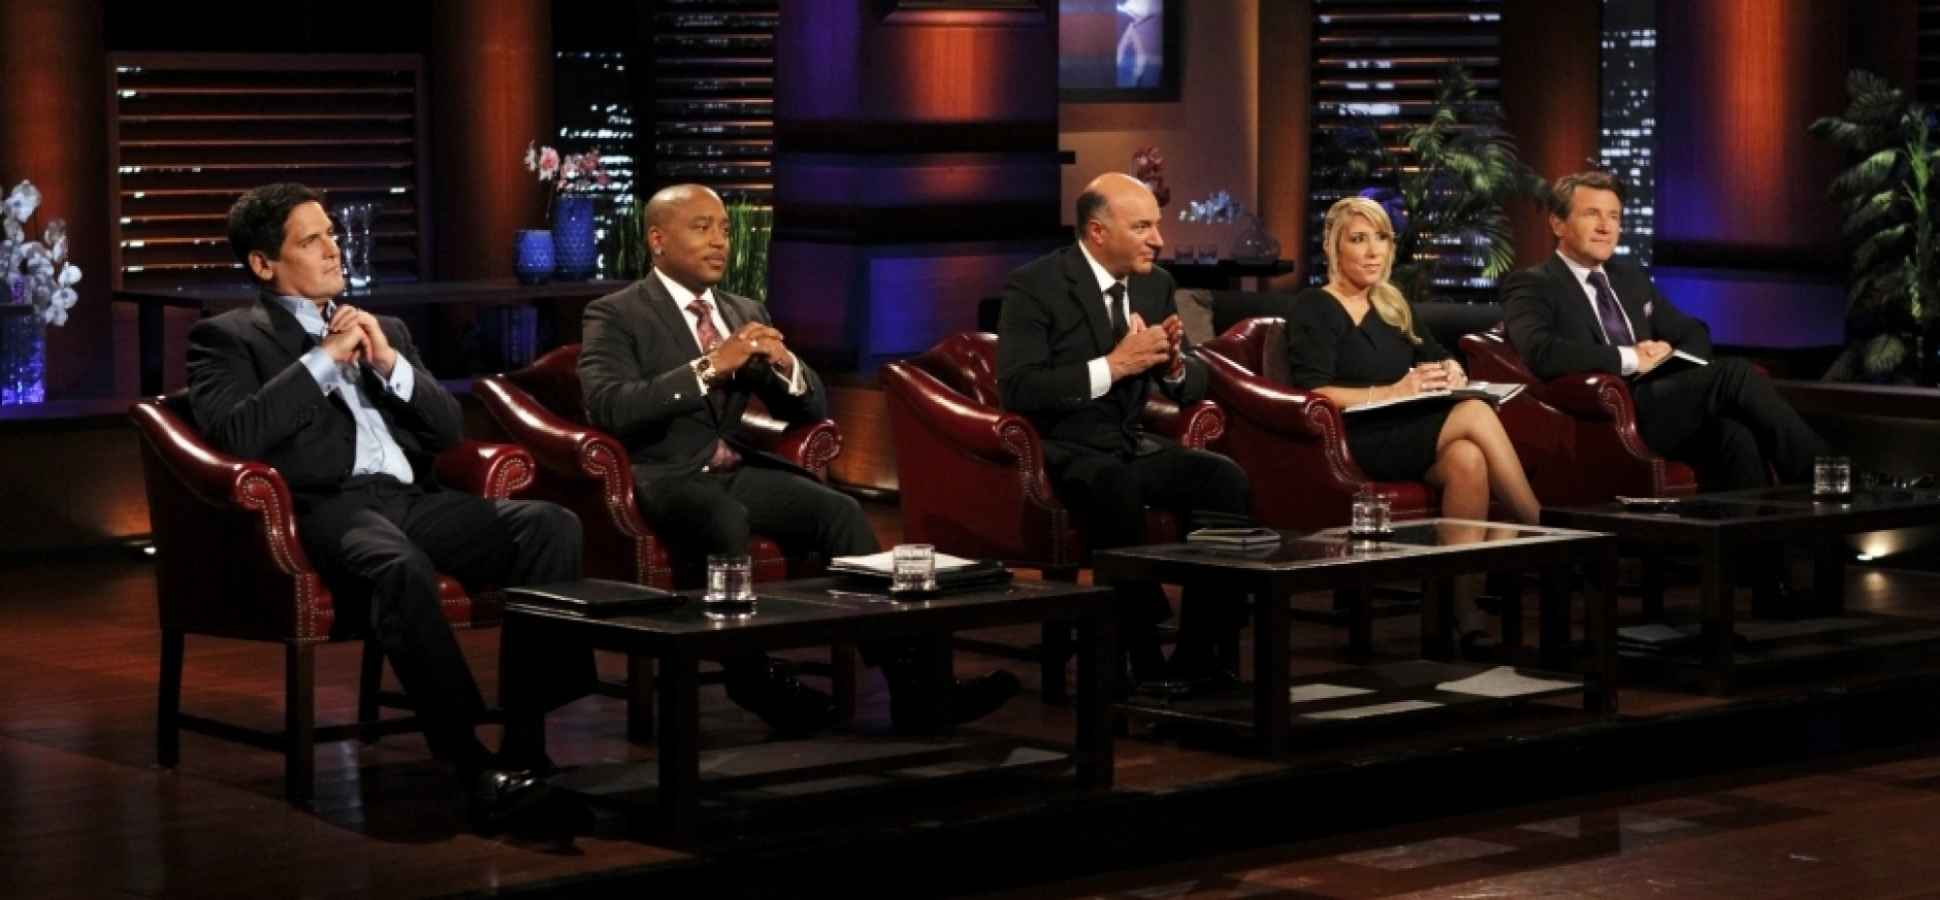 15 Tips We Can Learn as Entrepreneurs from Shark Tank